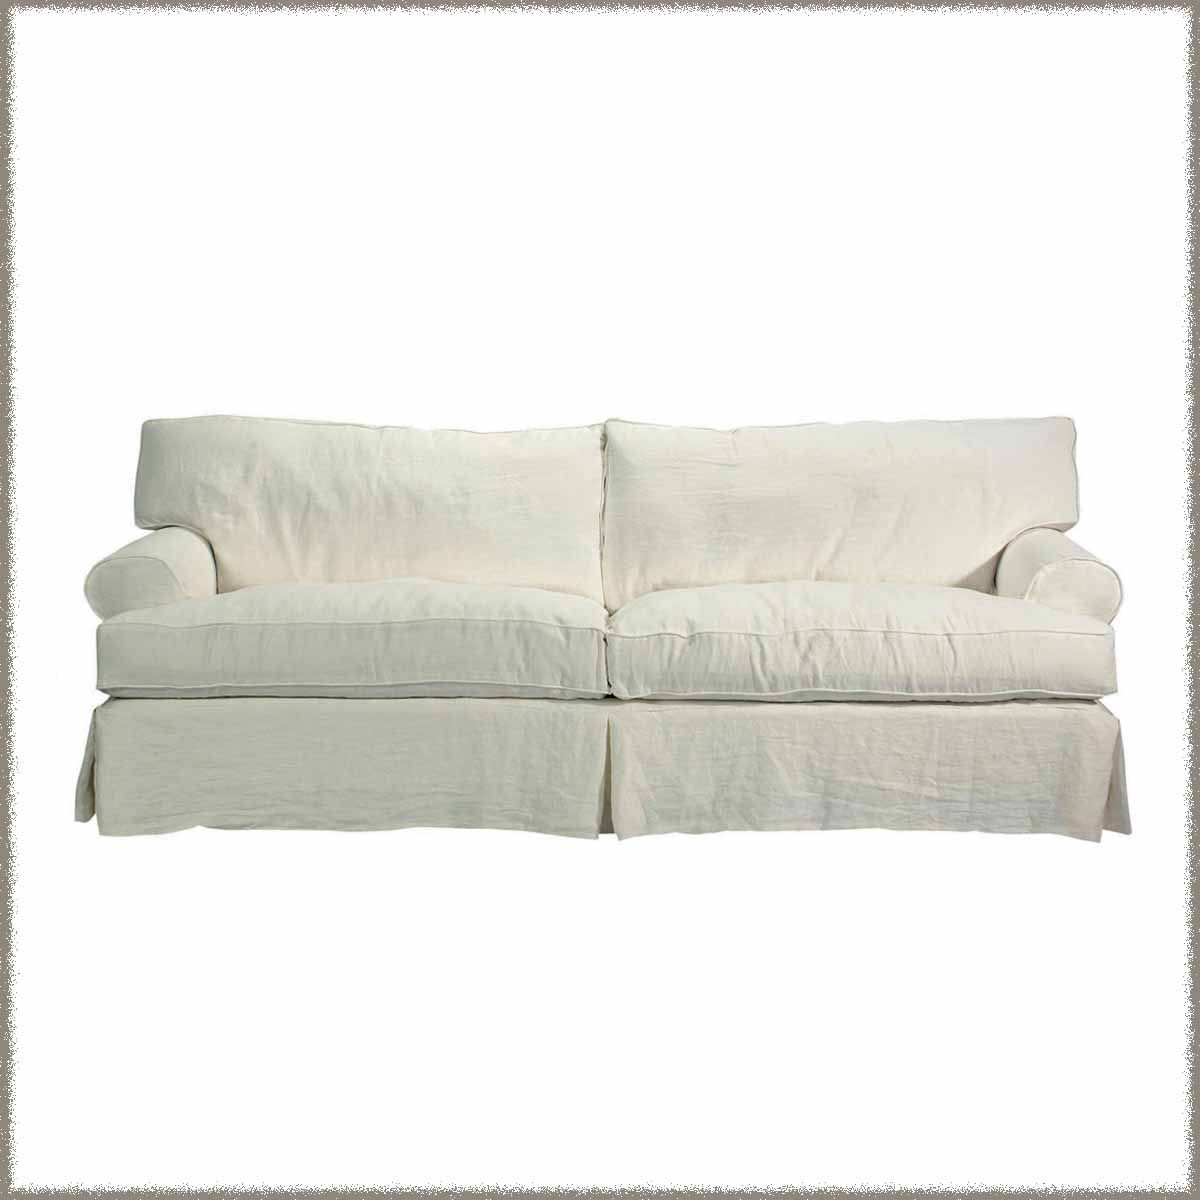 Slipcover Sofa Set: Slipcovered Furniture: Family-Friendly Or Not?